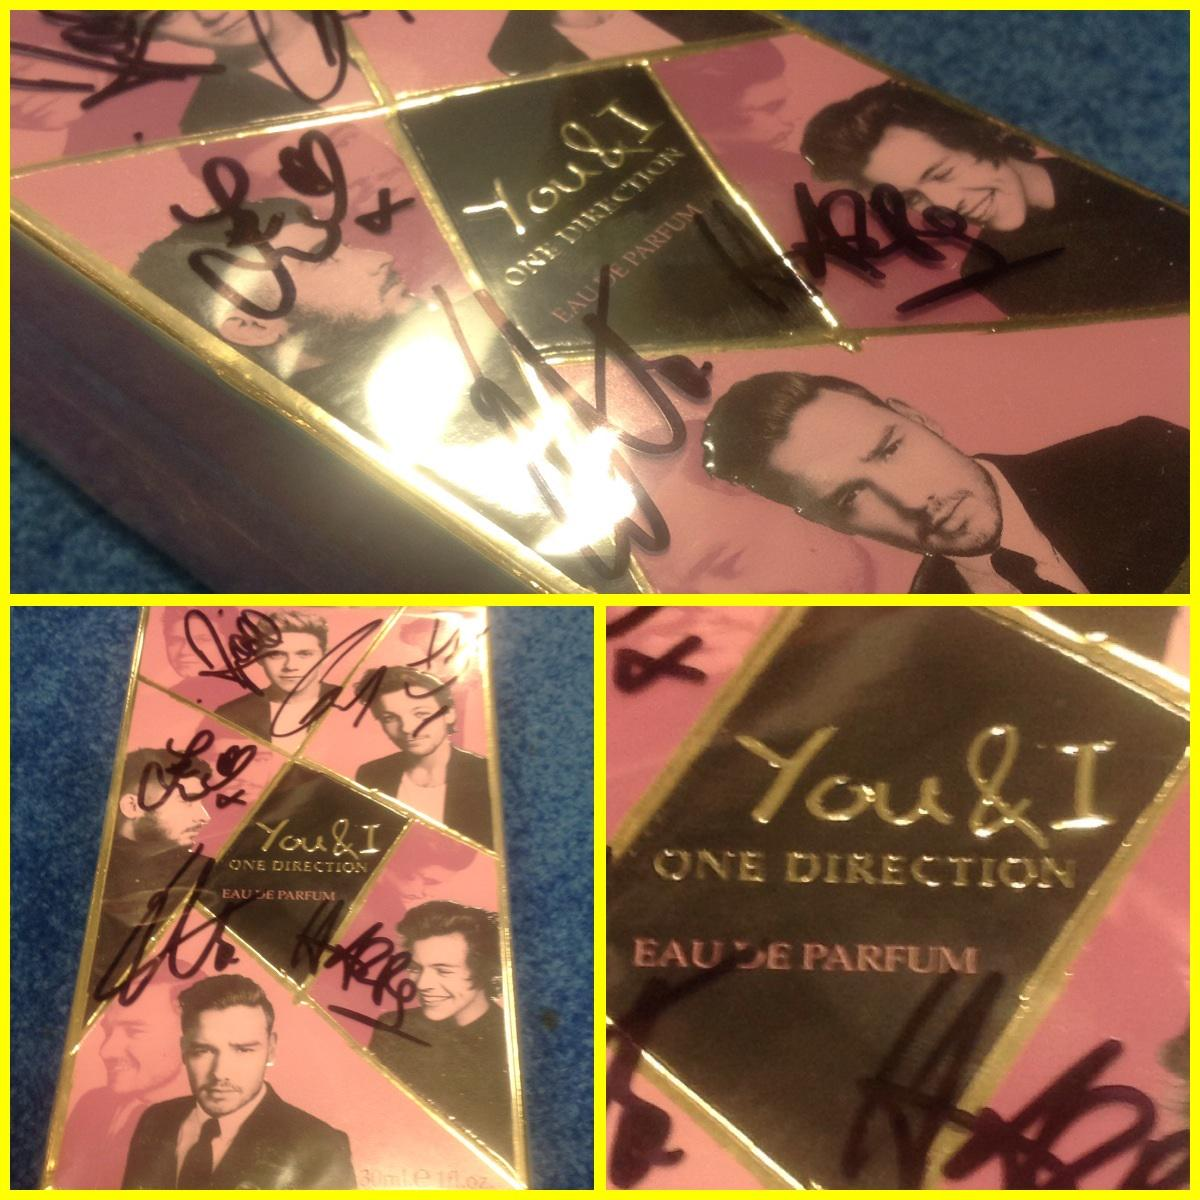 To #WIN a @onedirection signed perfume, follow & tell us who is at the top of the #RoSXmasTree http://t.co/V9IyrNn2K5 http://t.co/5lmKD1dFHZ